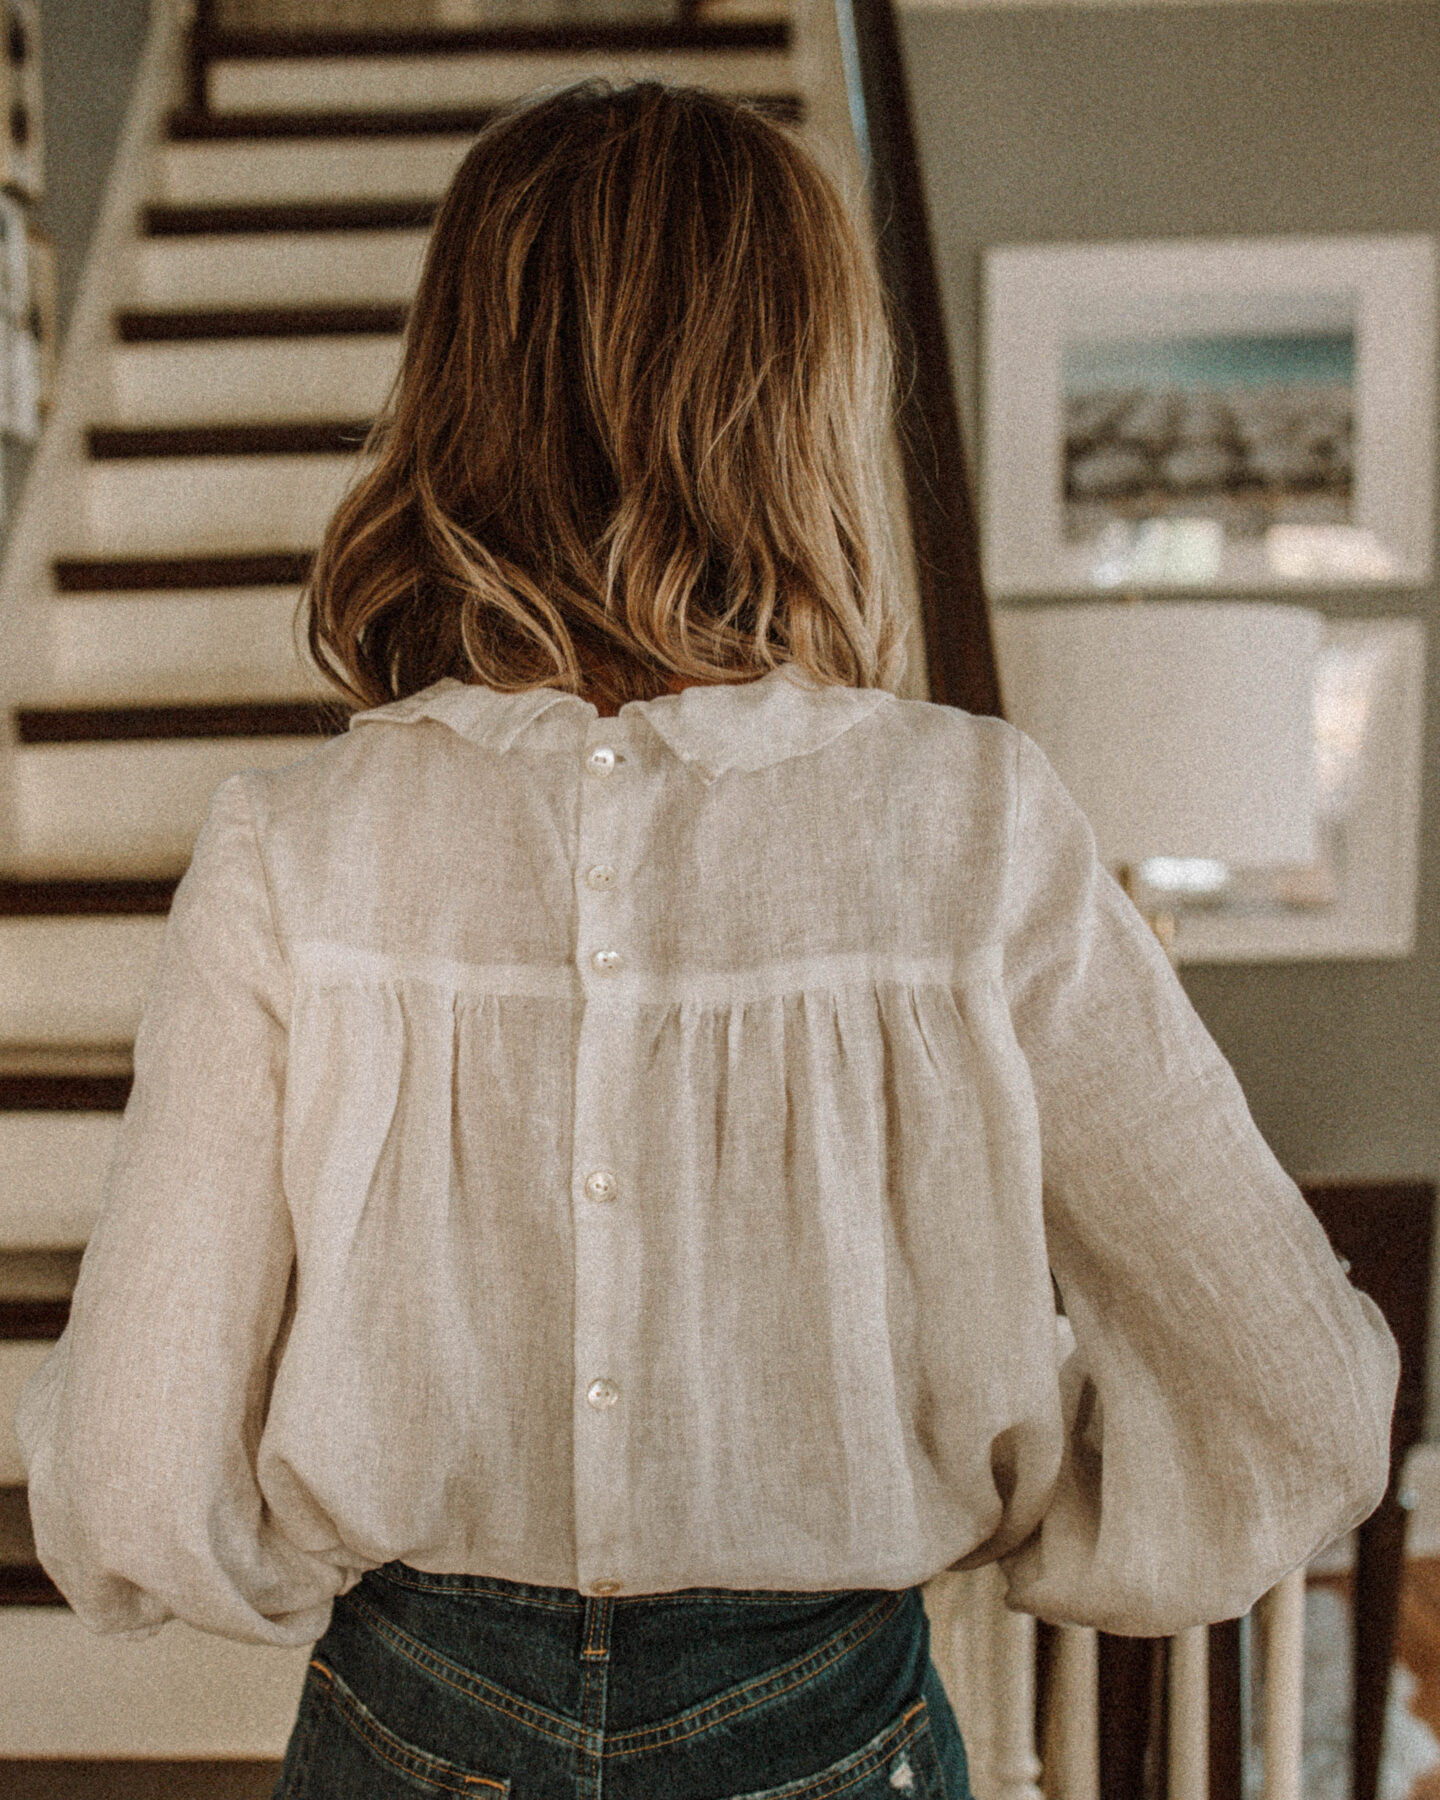 Holiday Outfit Ideas: The Statement Blouse, Peter Pan Collar